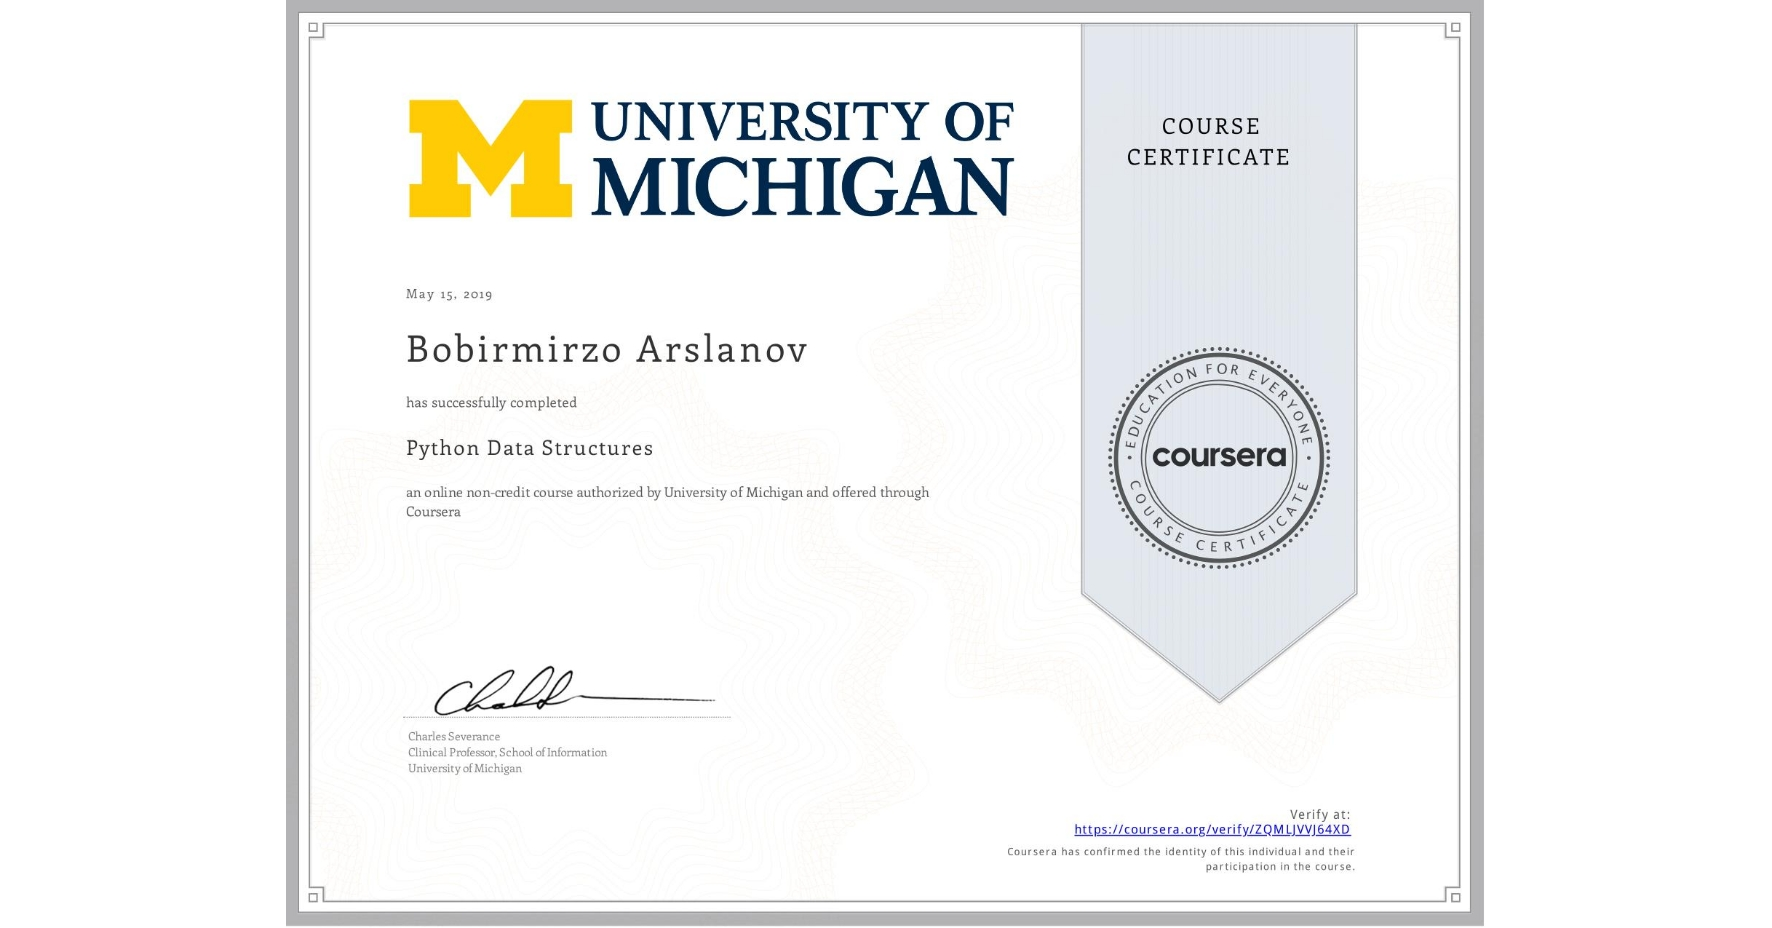 View certificate for Bobirmirzo Arslanov, Python Data Structures, an online non-credit course authorized by University of Michigan and offered through Coursera